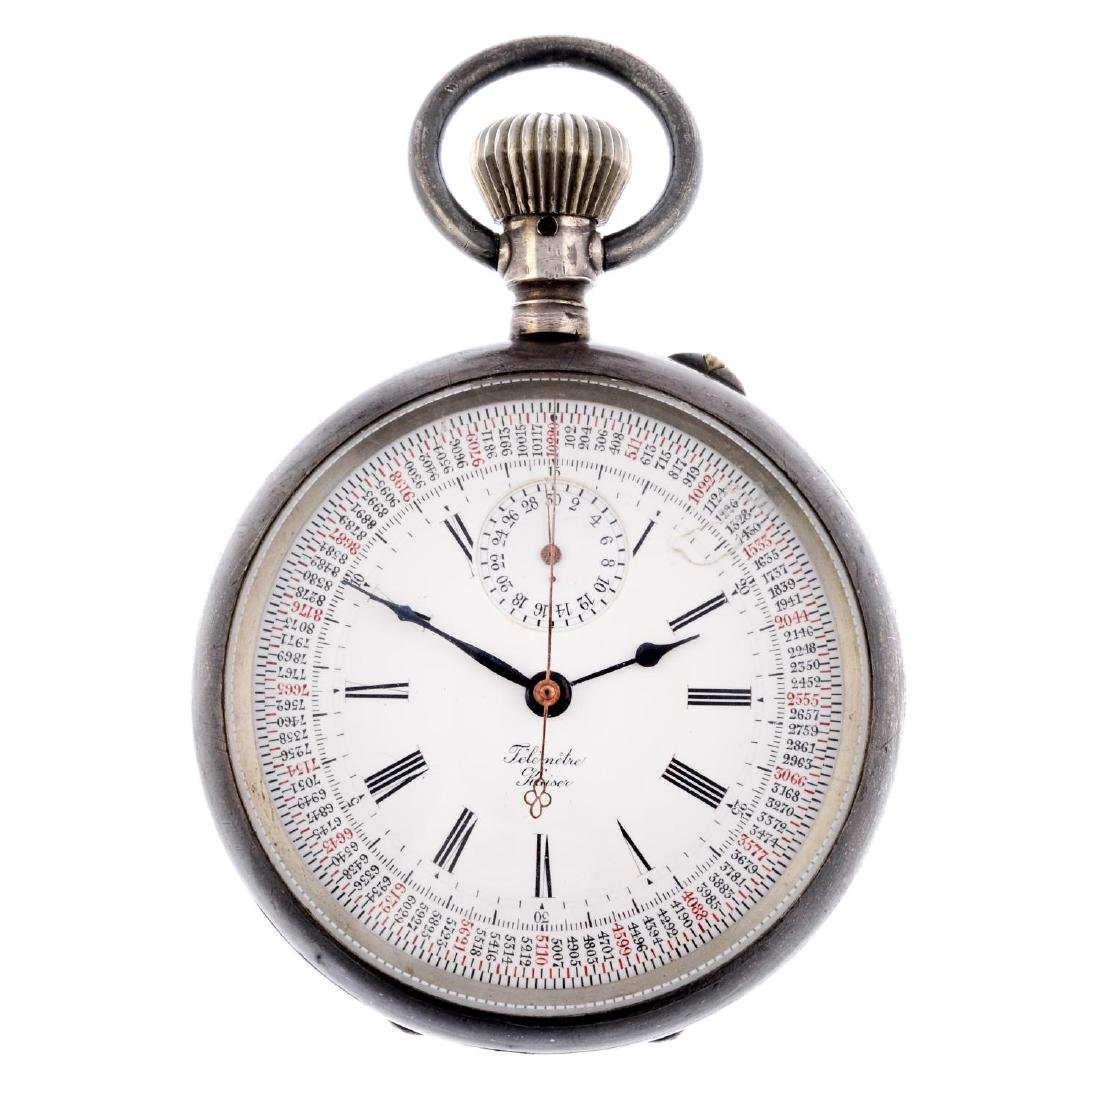 An open face pocket watch chronograph by Kaiser. White